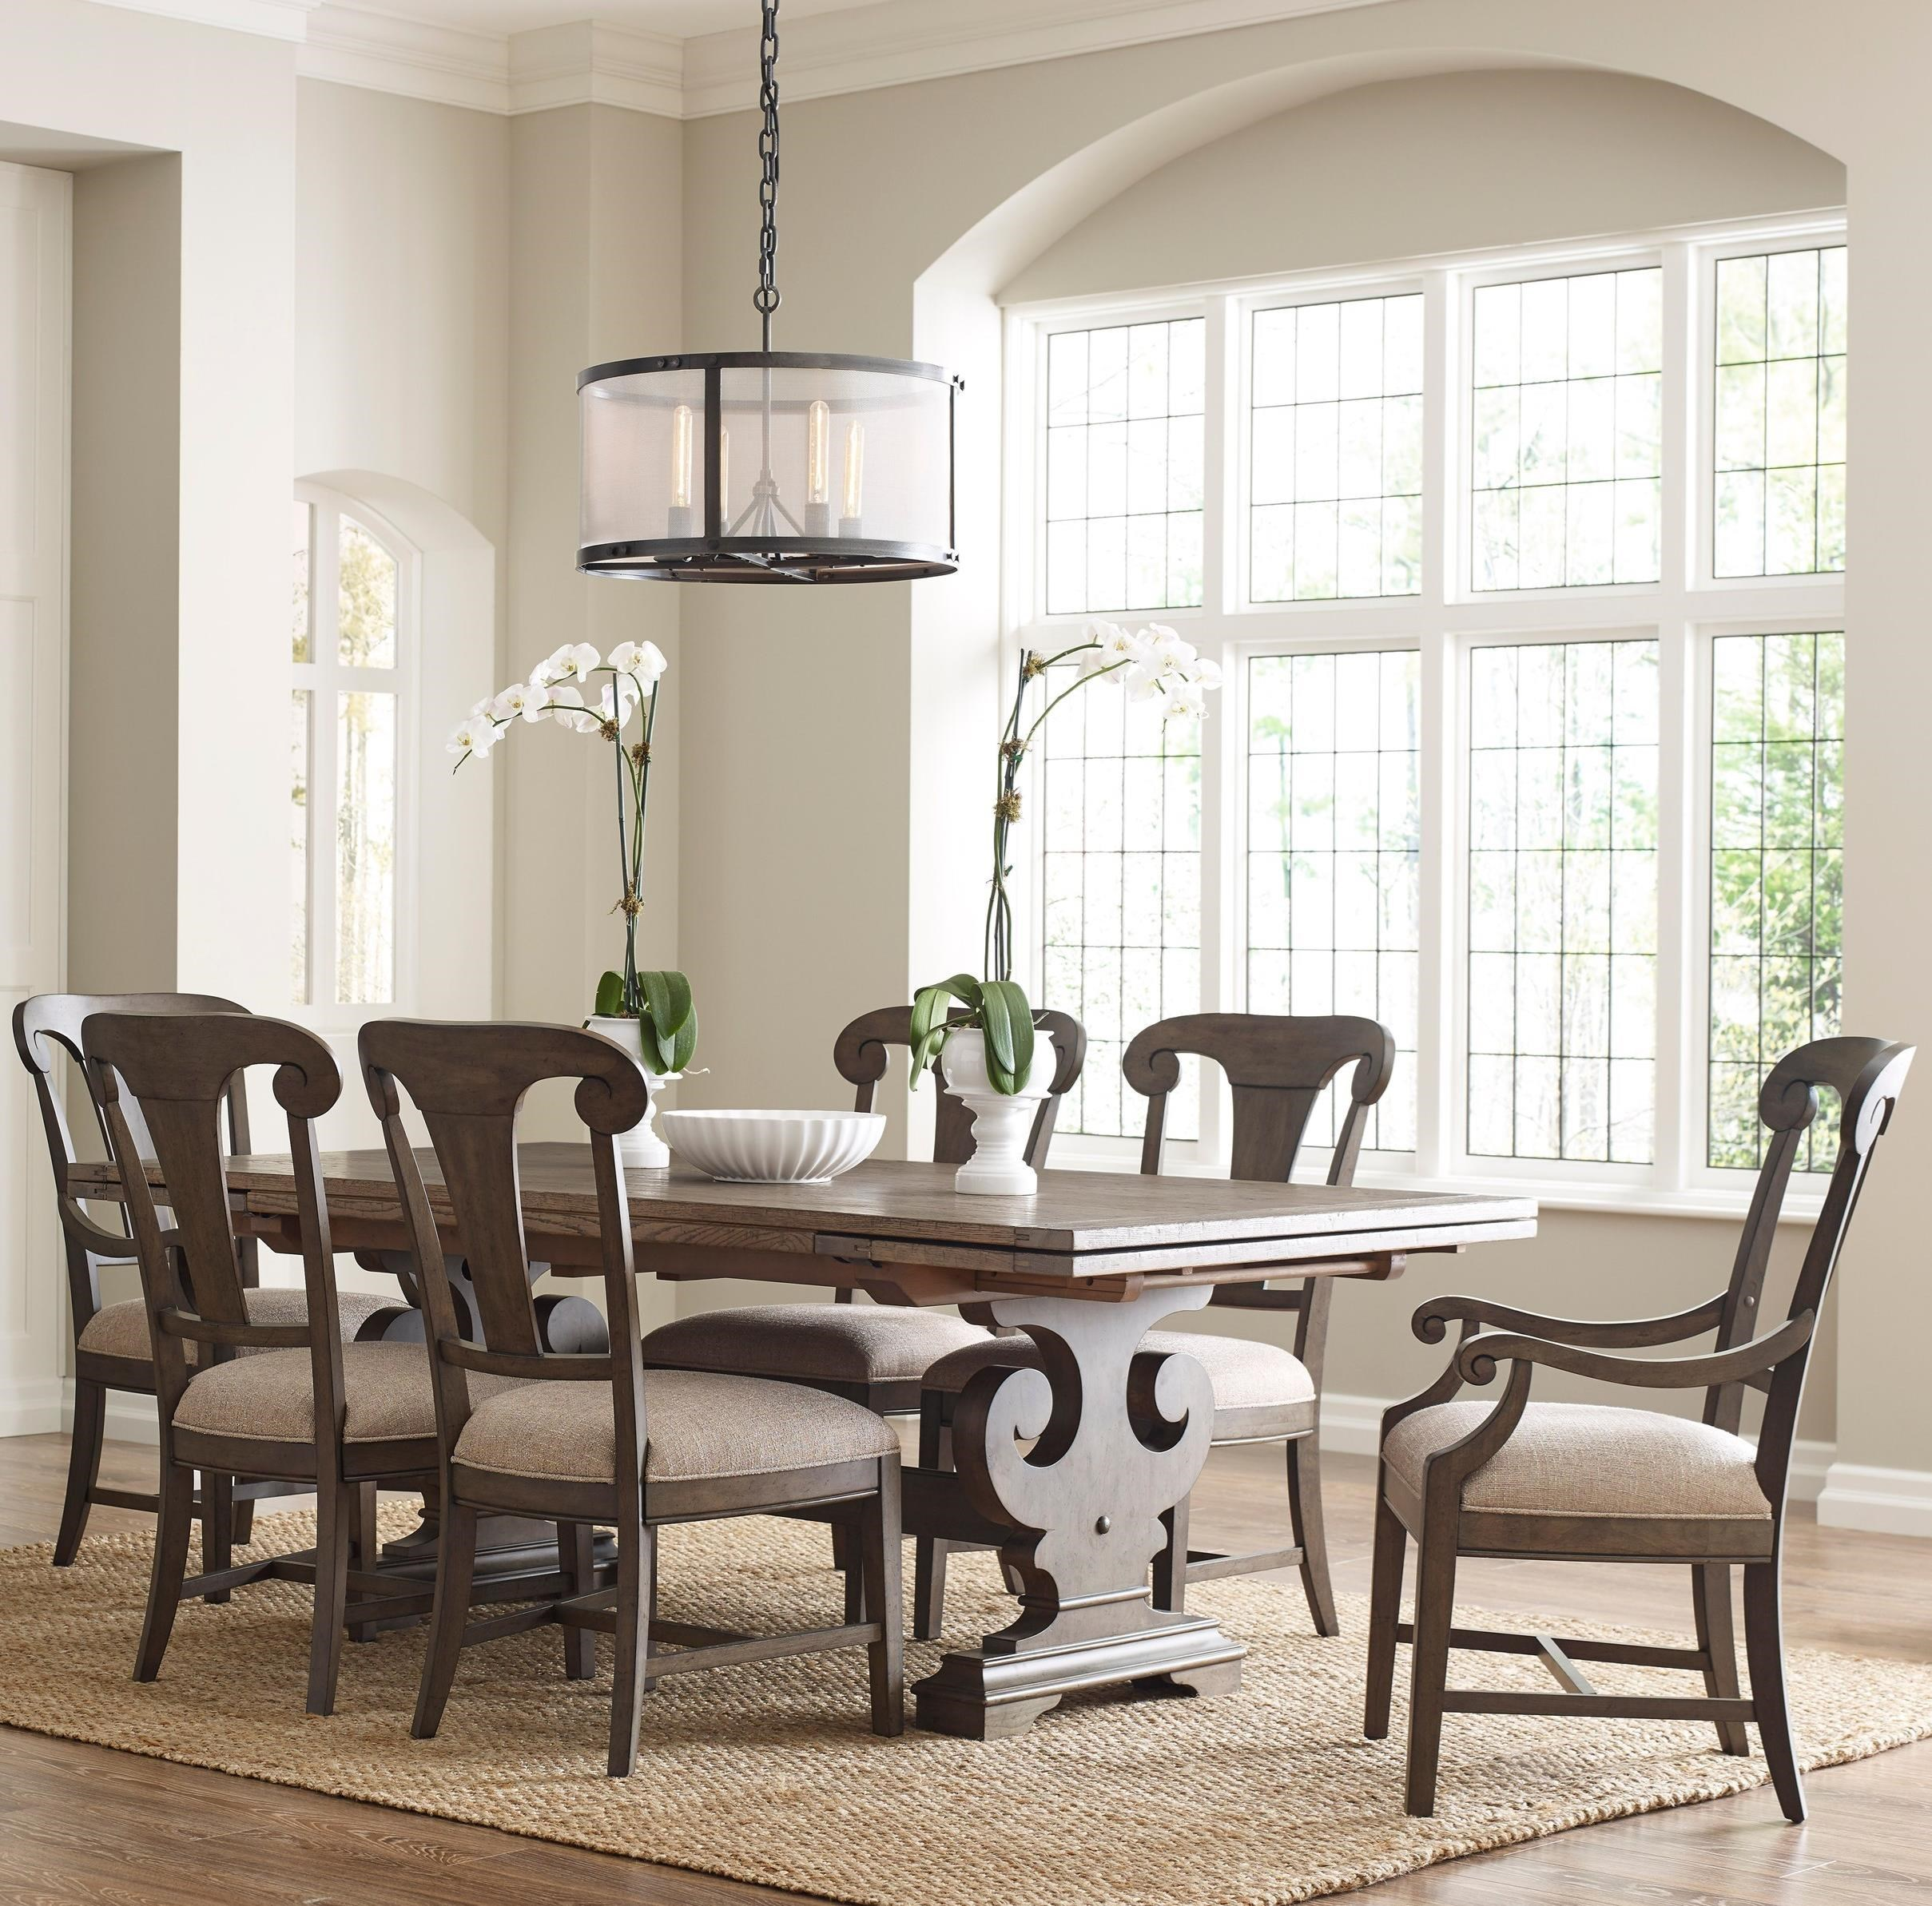 Kincaid Furniture Greyson Seven Piece Dining Set With Crawford Refectory  Table And Fulton Chairs | Hudsonu0027s Furniture | Dining 7 (or More) Piece Sets